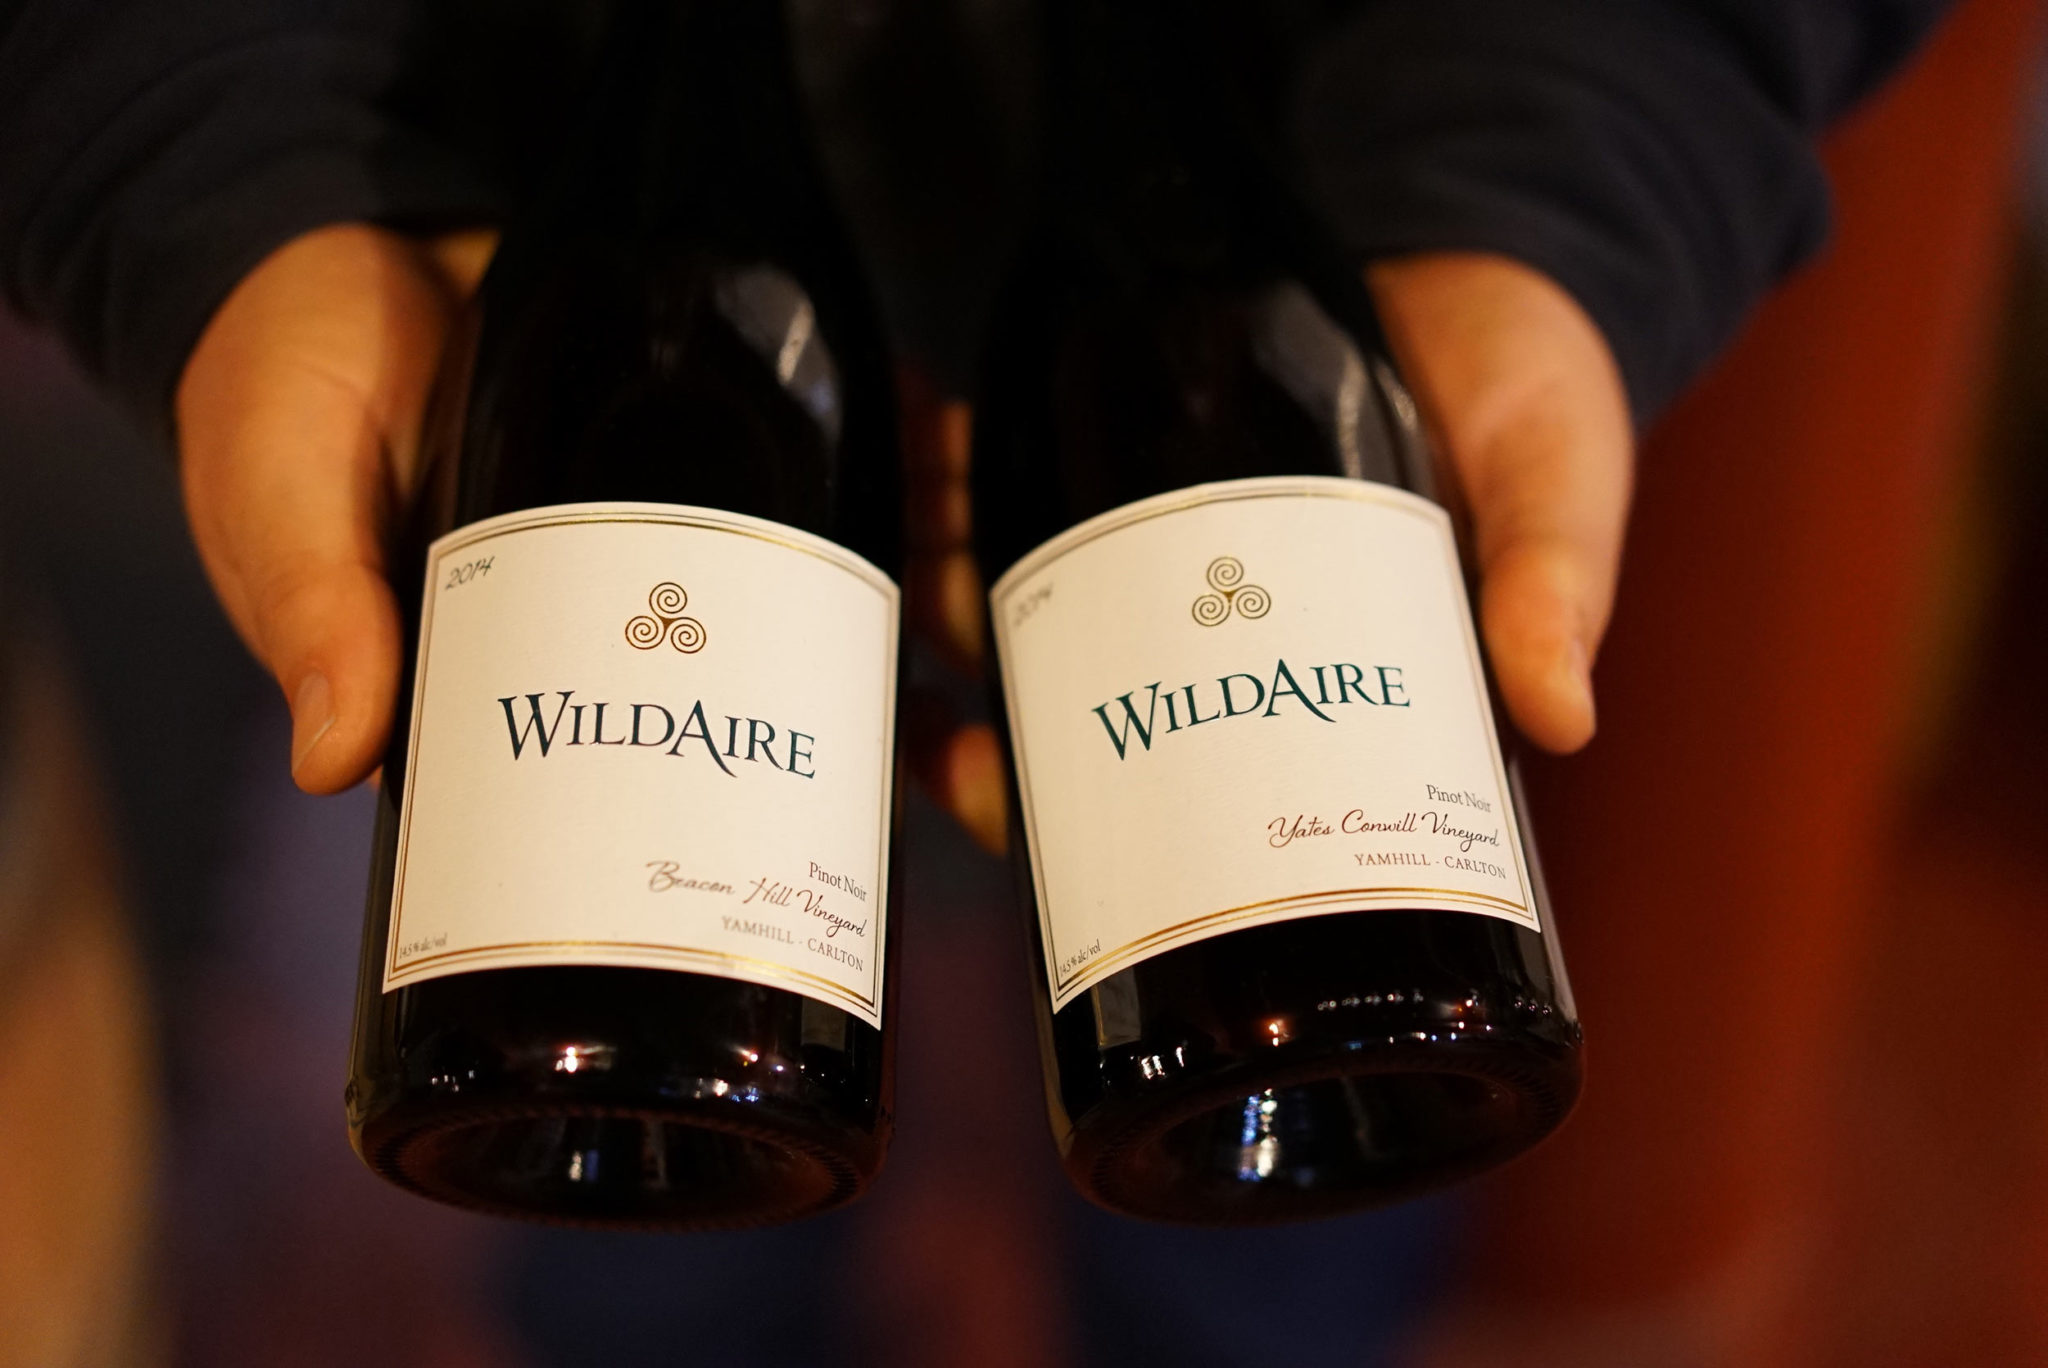 WILDAIRE Bottles